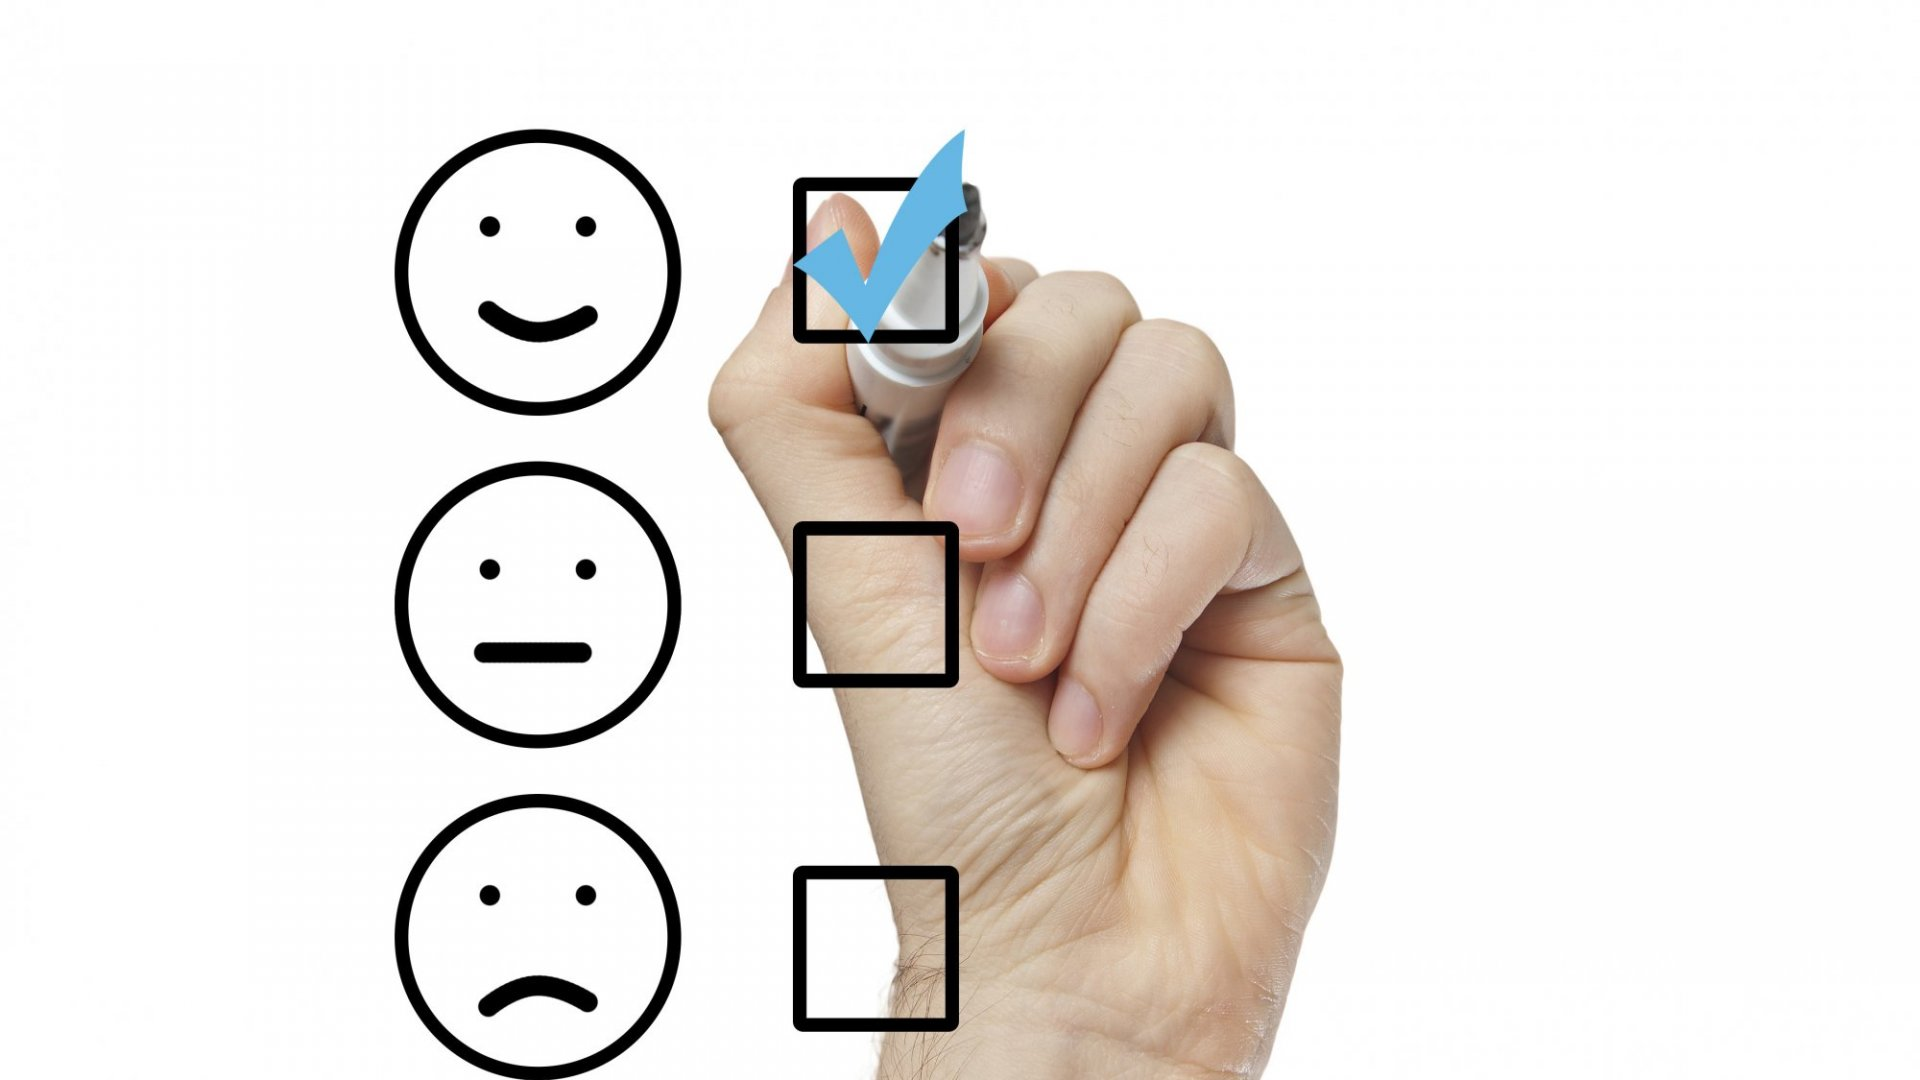 Remembering to take the happiness of your customers into account is vital.